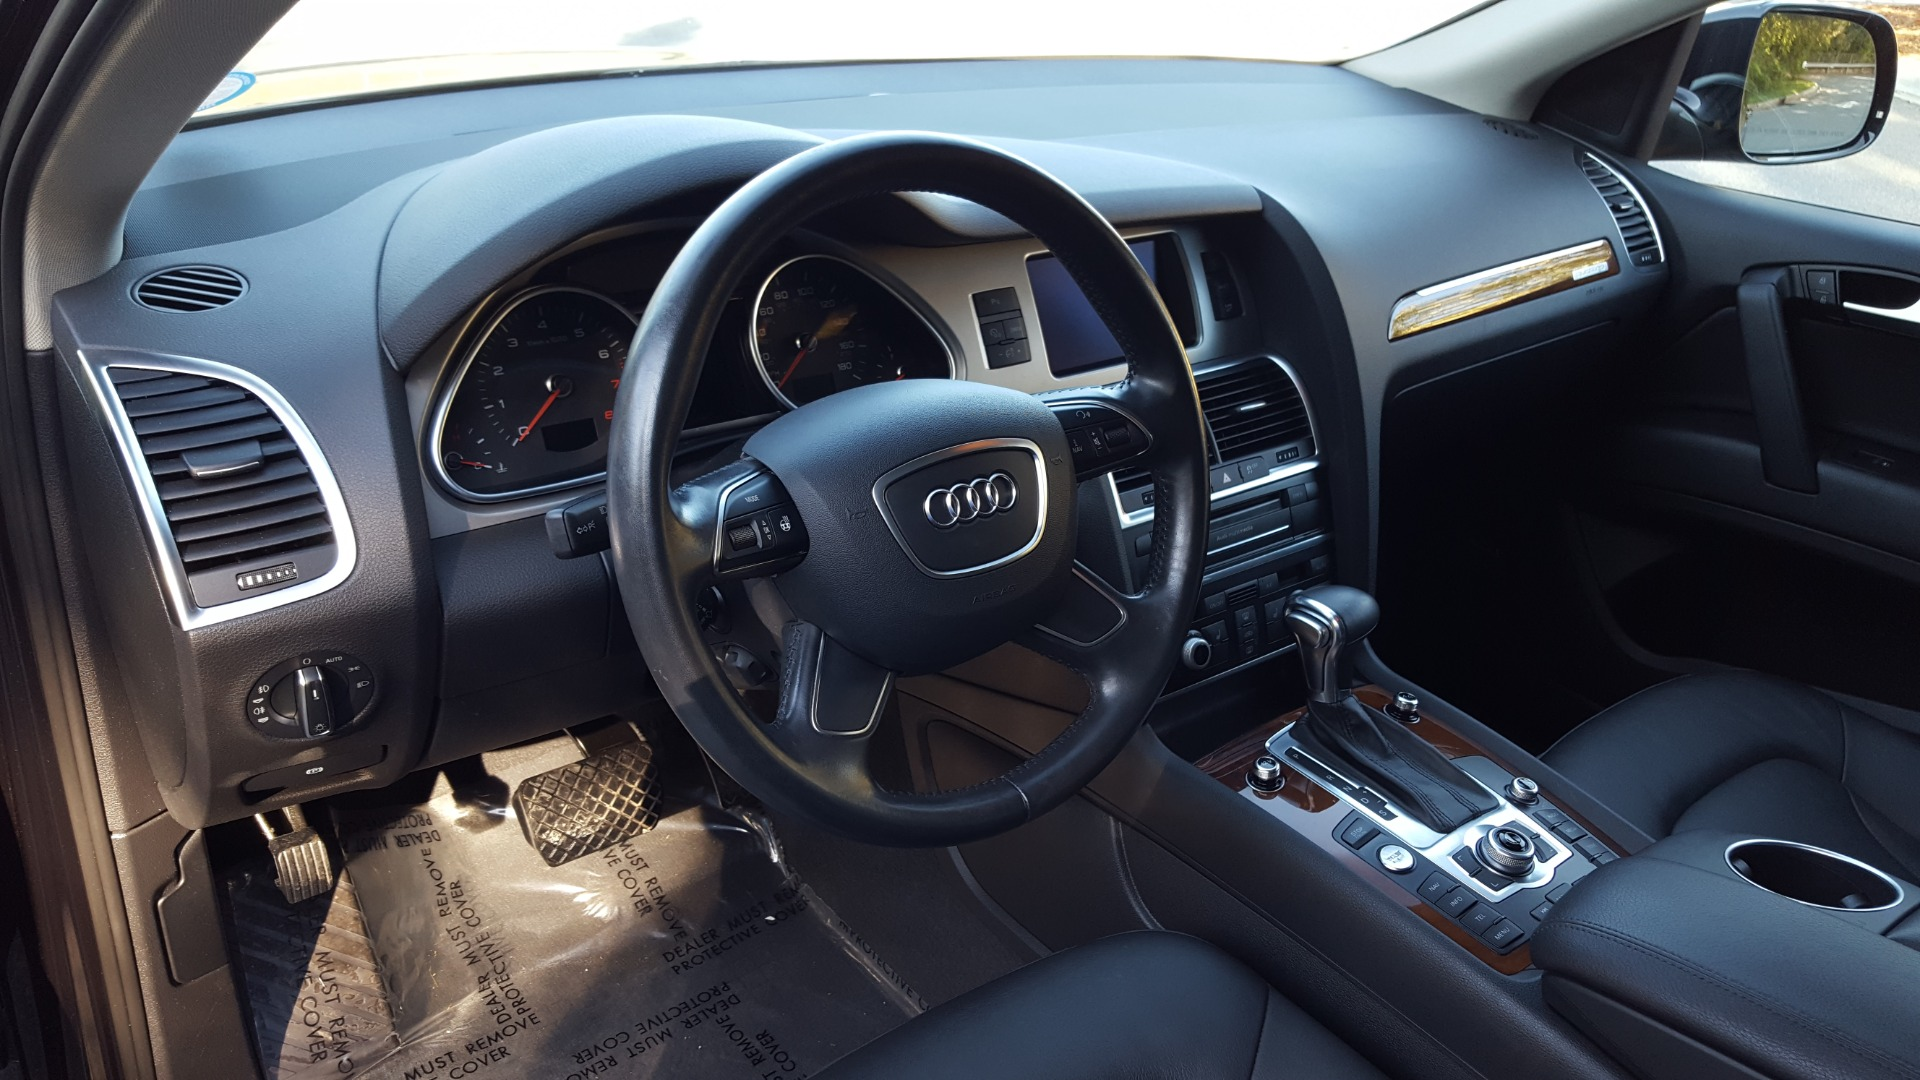 Used 2015 Audi Q7 3.0T PREMIUM PLUS TIPTRONIC / NAV / OFFROAD PLUS / WARM WEATHER / COLD WEAT for sale Sold at Formula Imports in Charlotte NC 28227 41